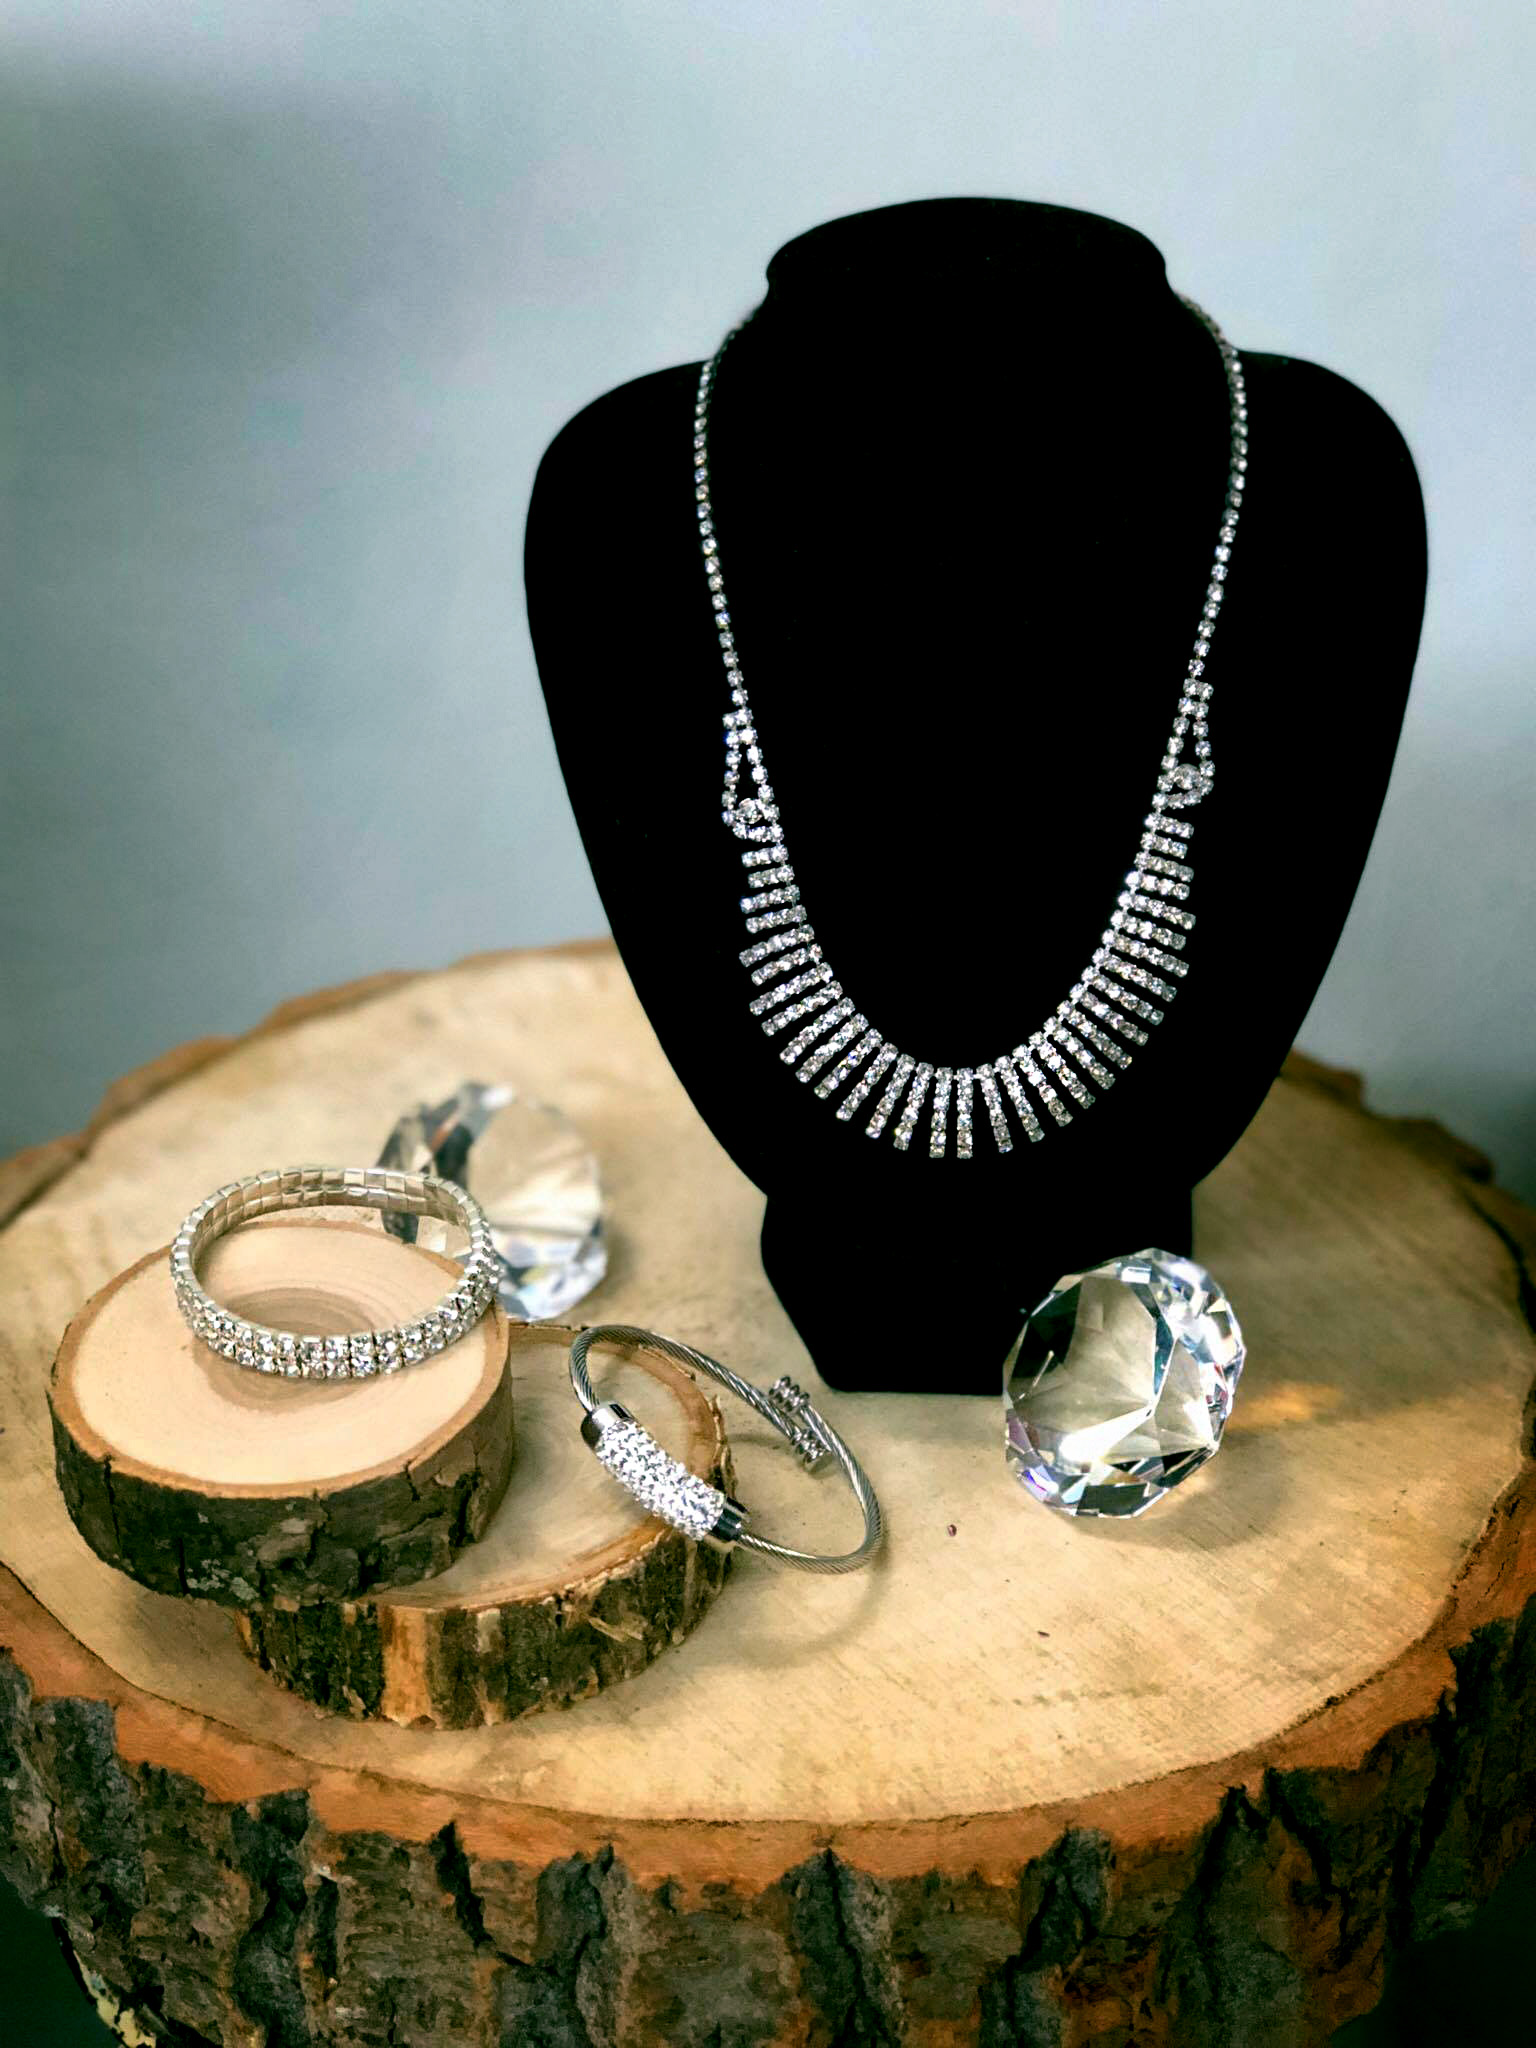 Jewellery - Click To see More